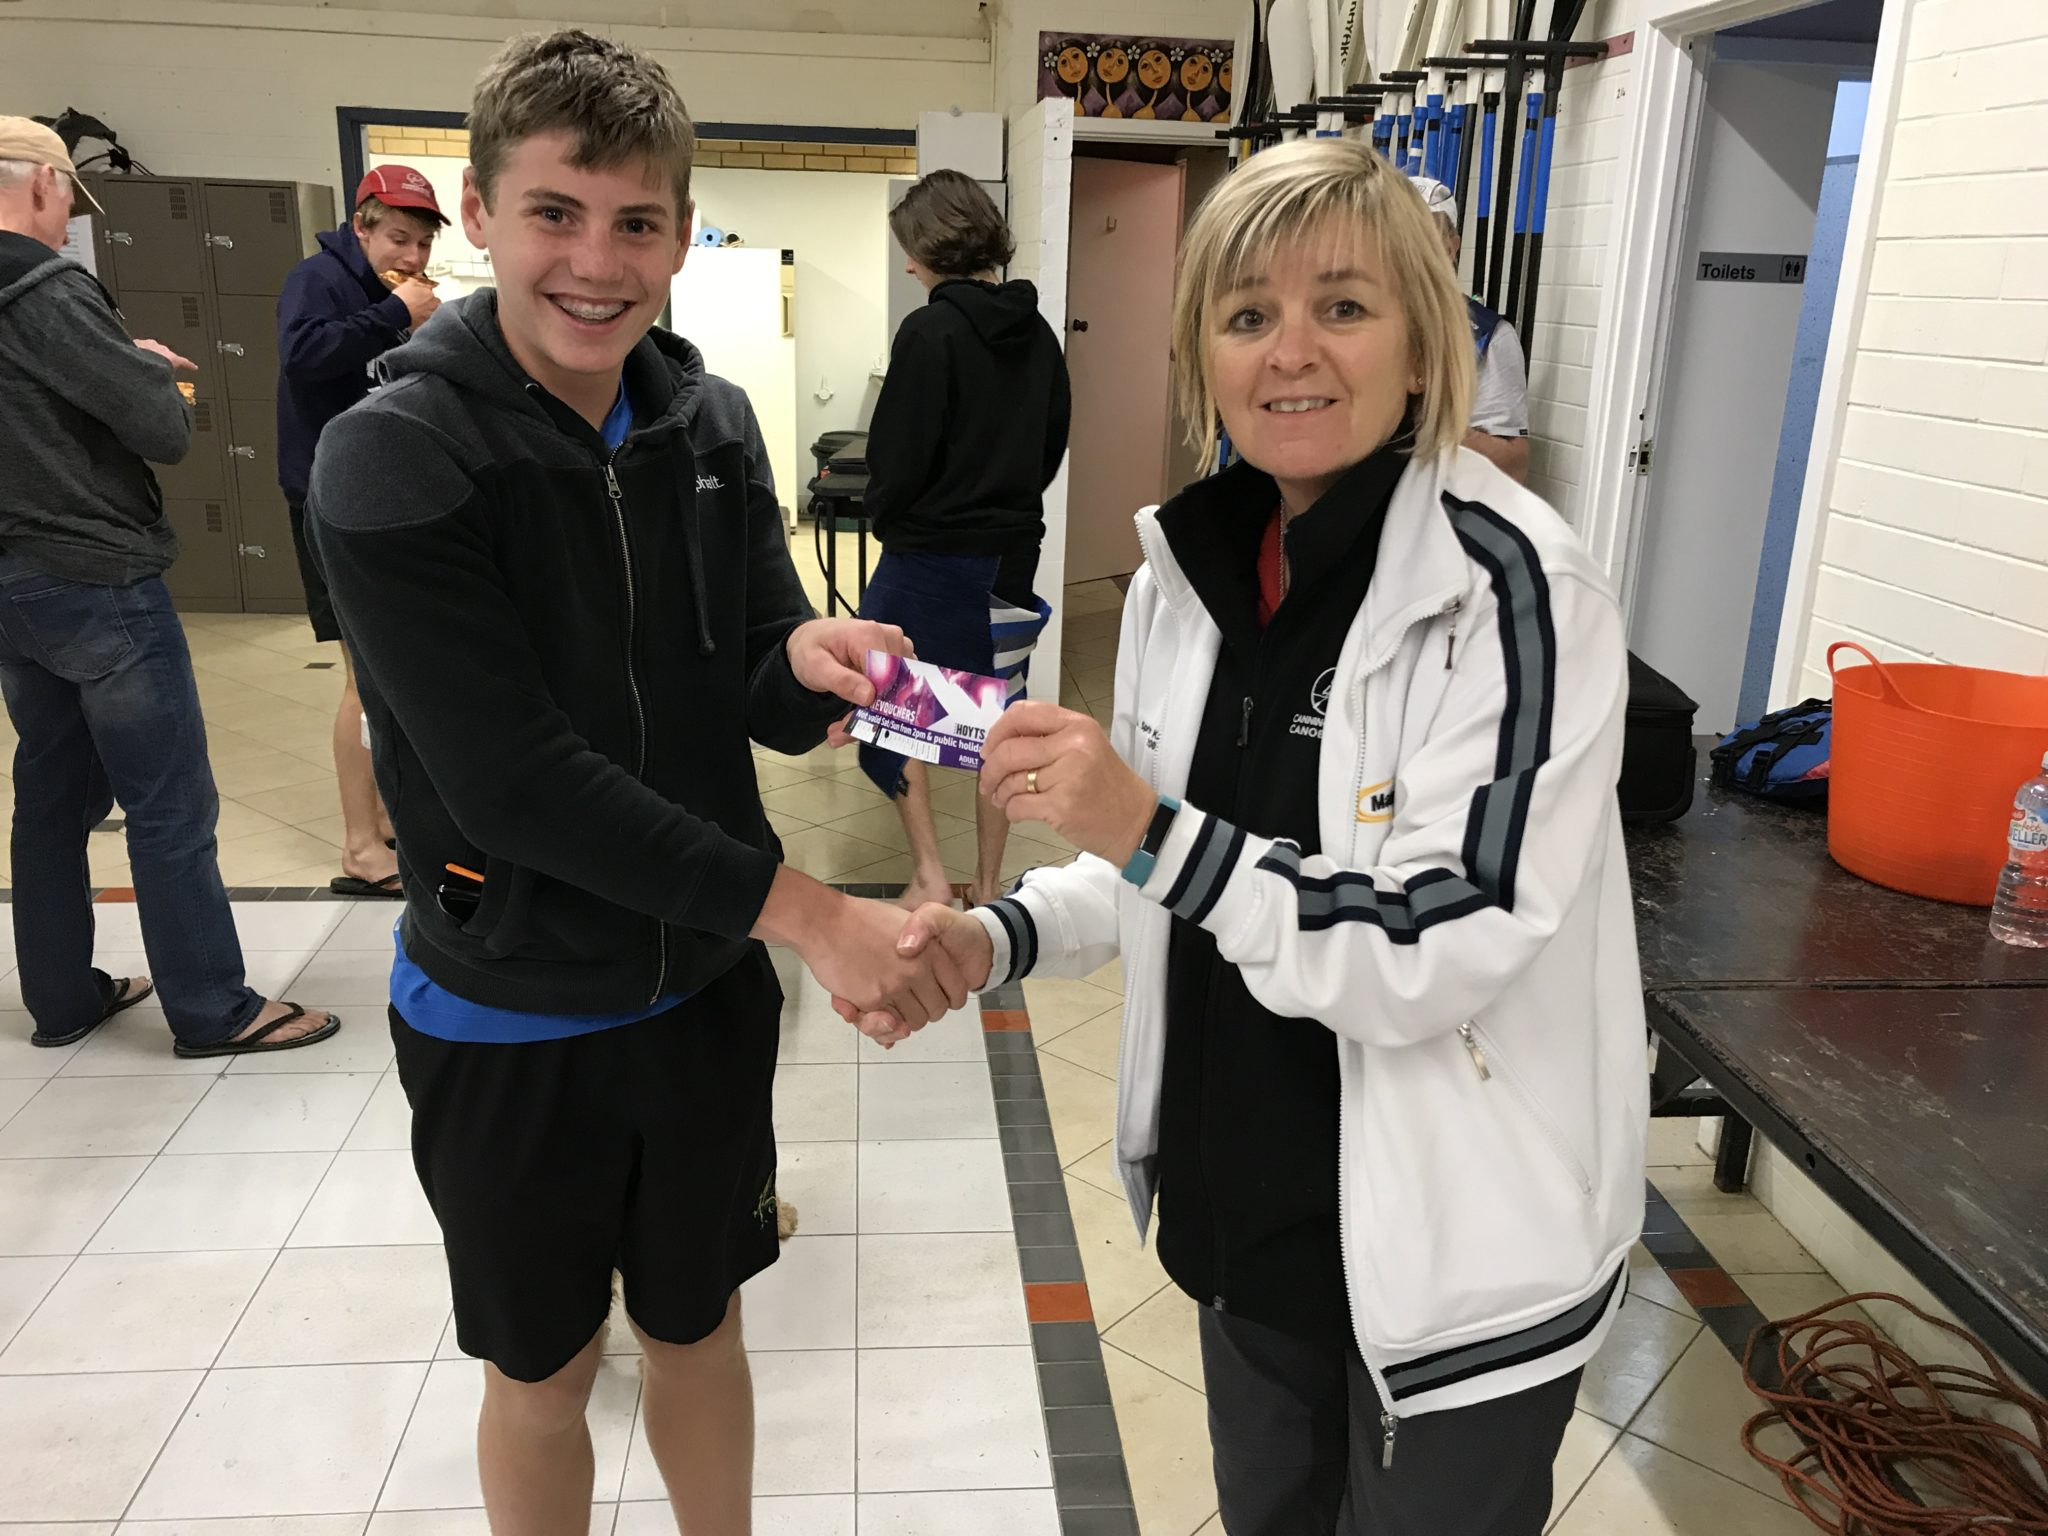 Tuesday 3rd October 2017 :Tonights photo shows Club Secretary Judith Thompson presenting Tim Hyde with a movie voucher